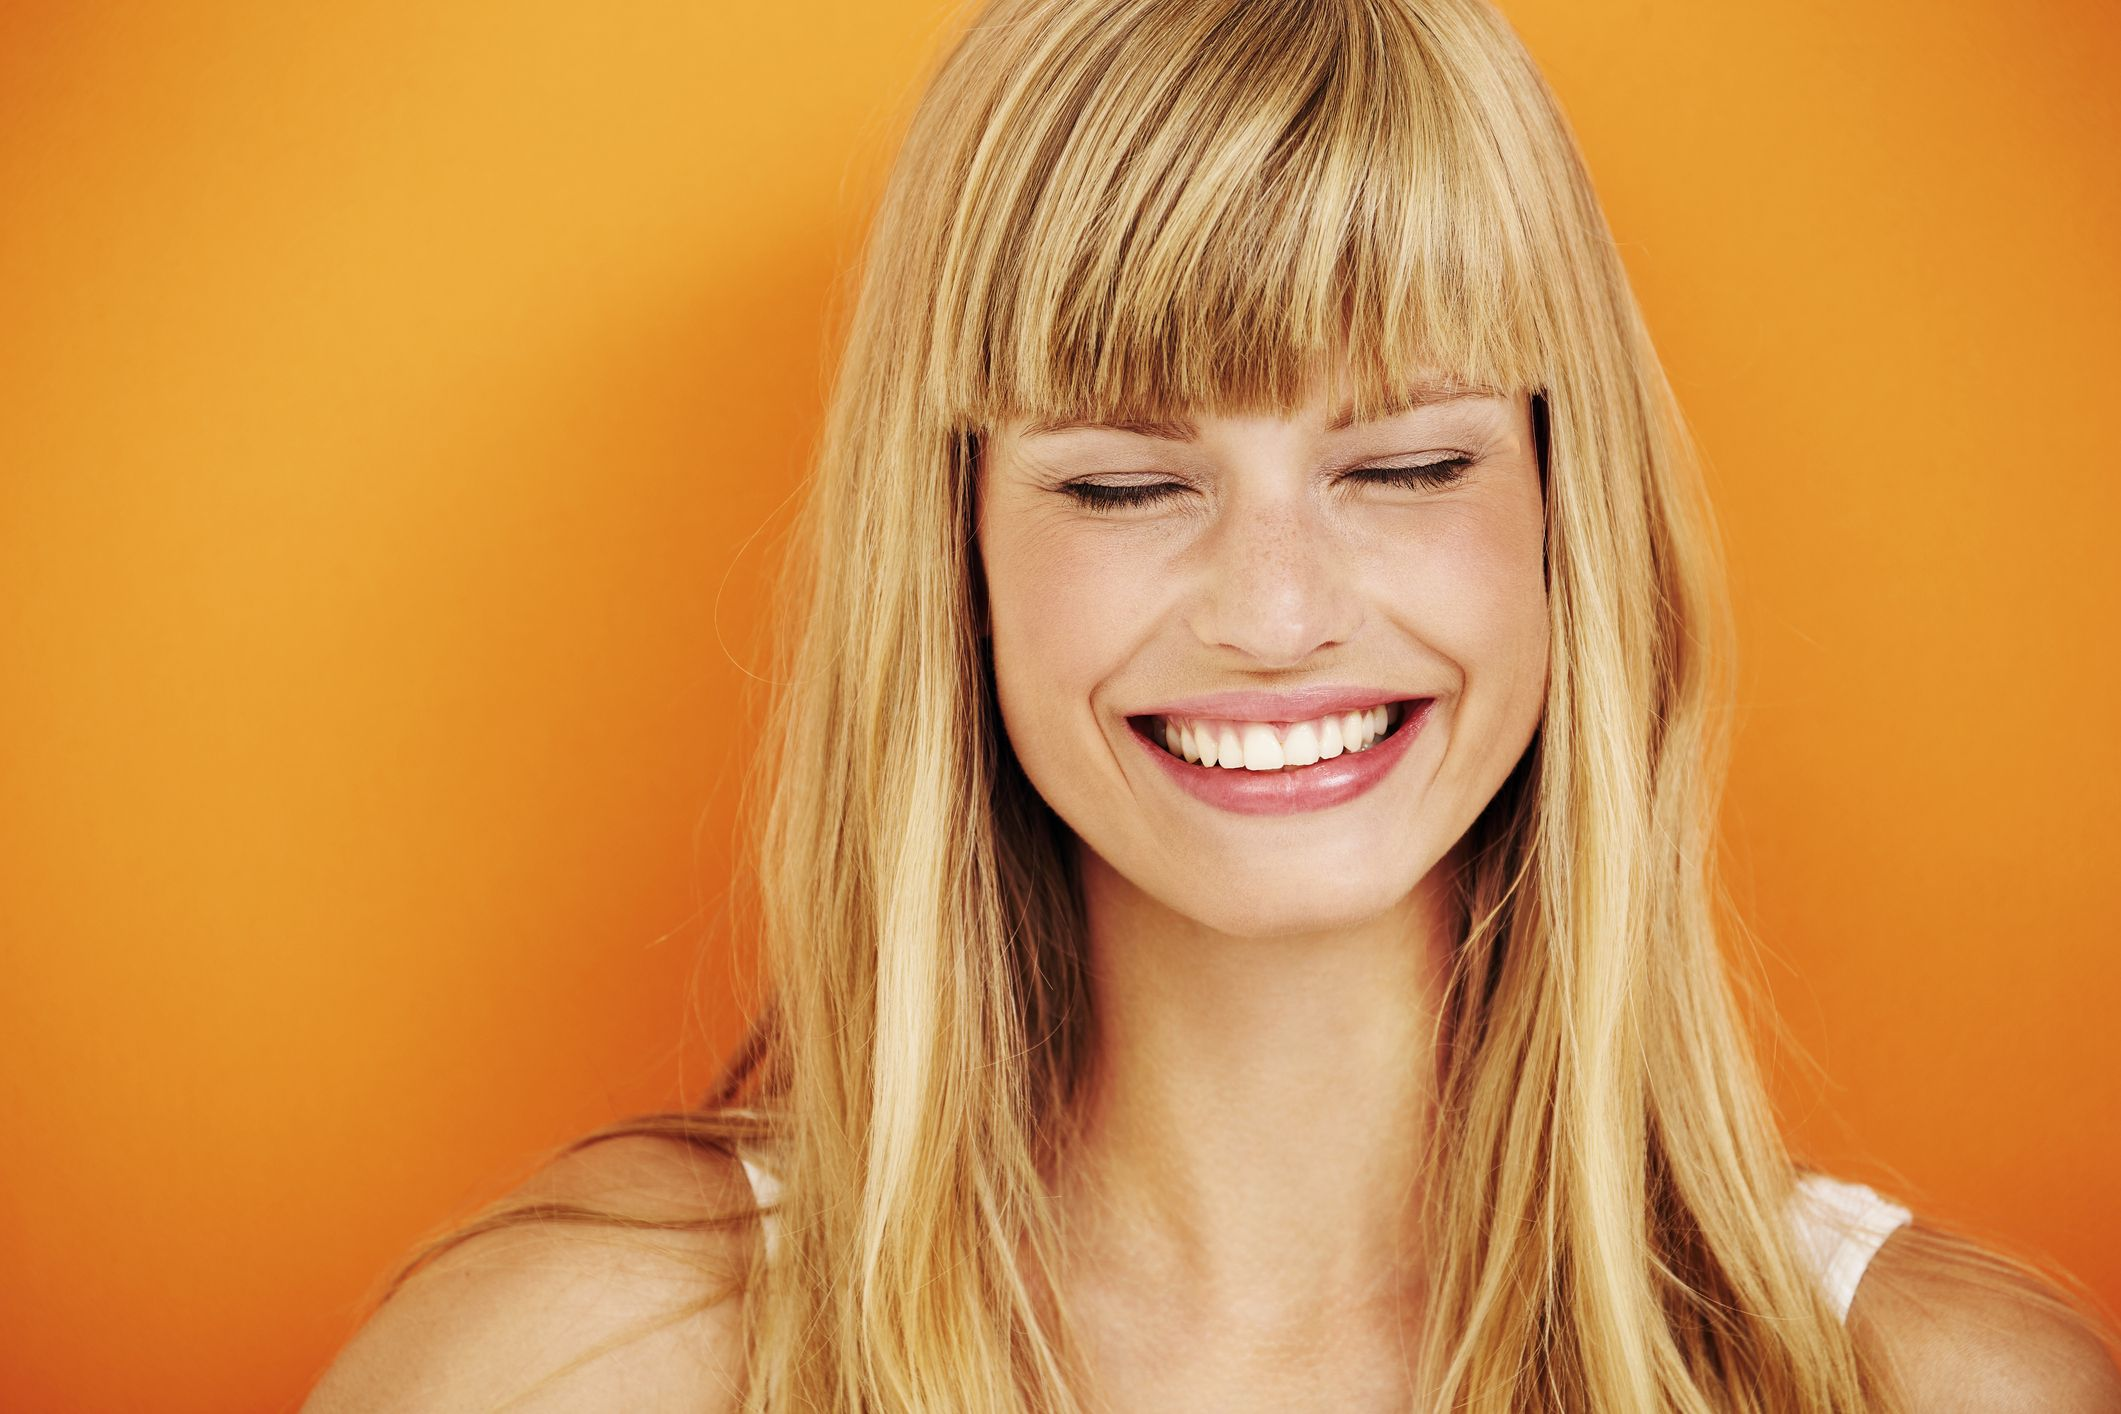 How To Grow Hair Faster 11 Tips For Growing Longer Hair Quickly